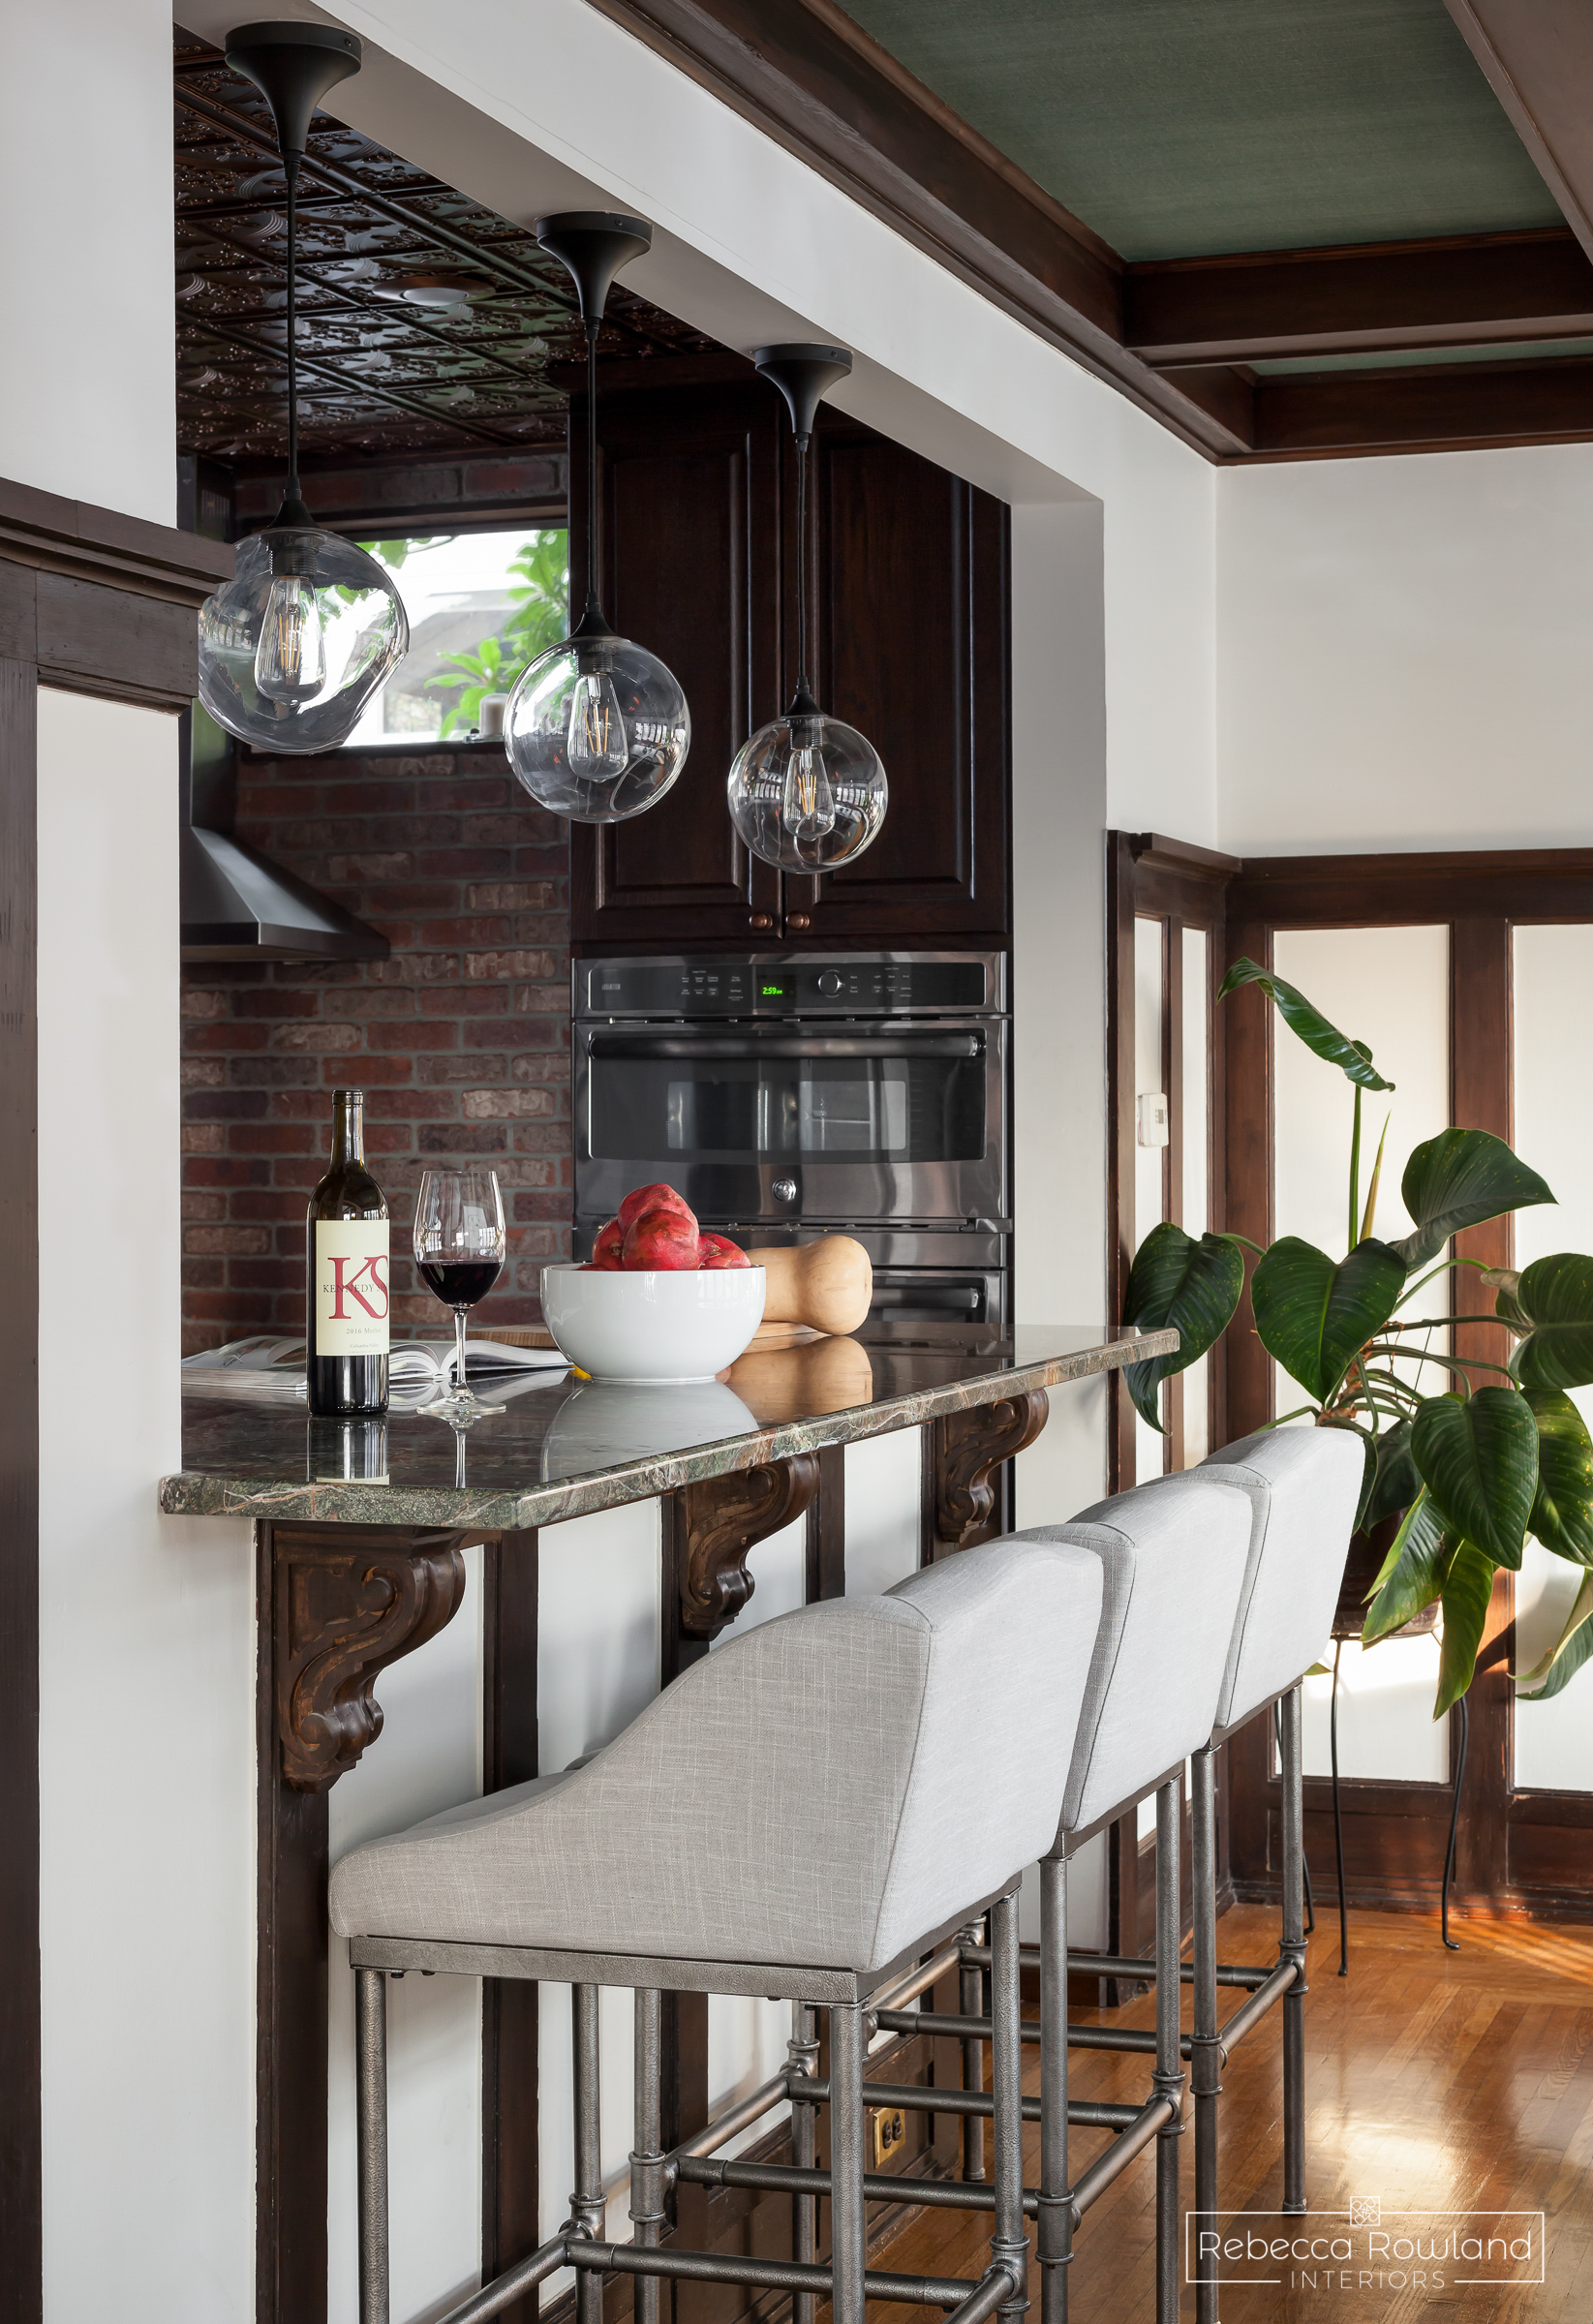 The Reveal: A Dining Room Gets a New Island Lighting and Seating Plan. Design: Rebecca Rowland Interiors. Photograph: Julie Mannell